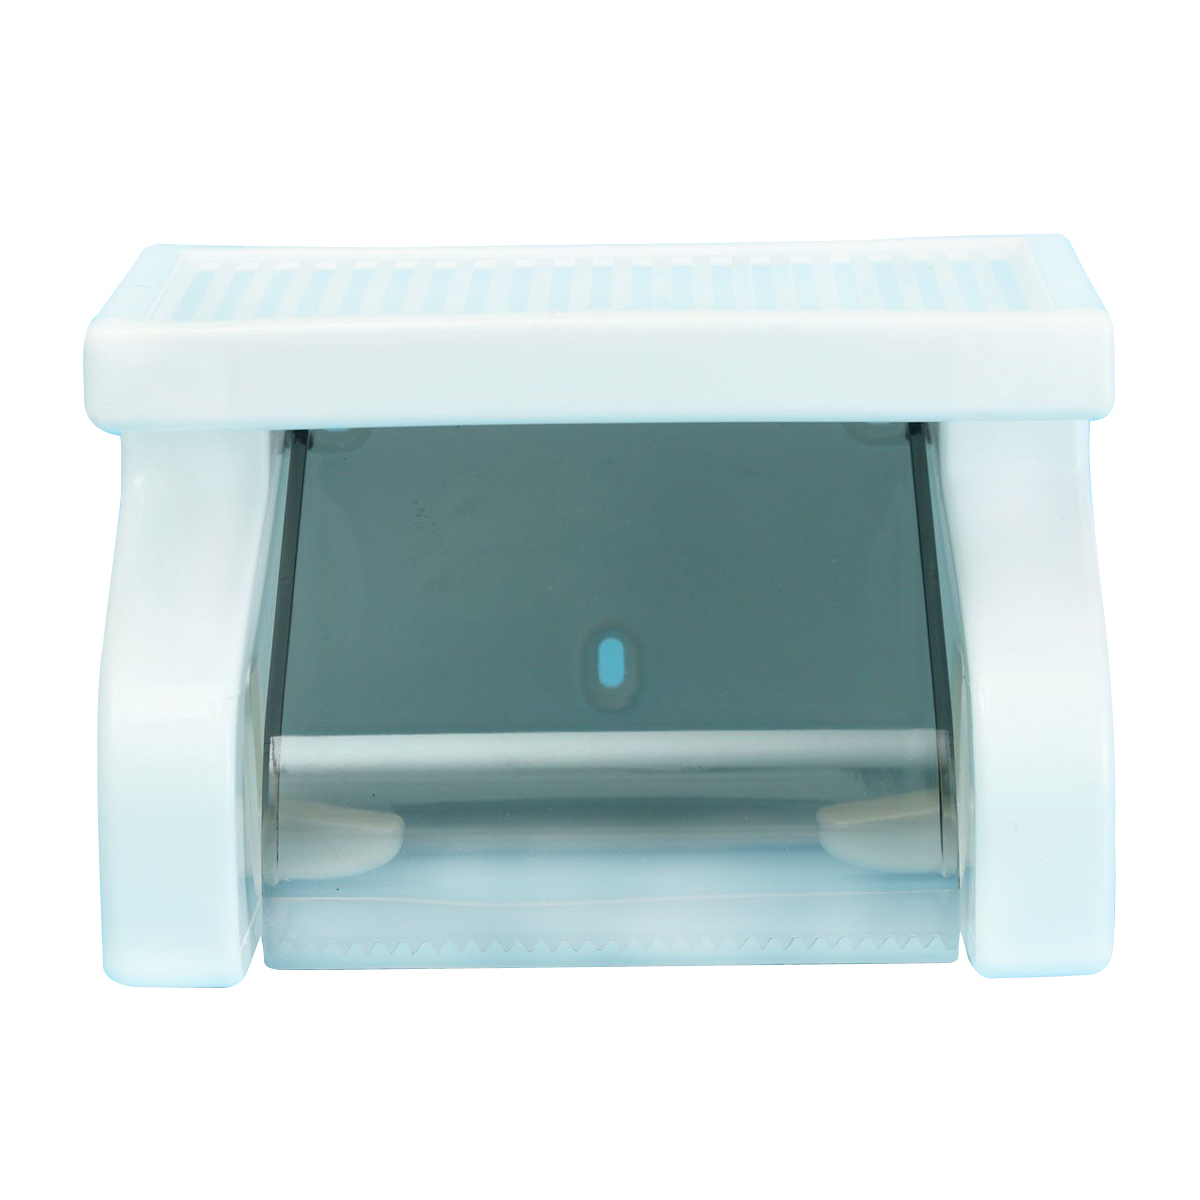 Waterproof Toilet Paper Holder Tissue Roll Stand Box with Shelf Rack ...